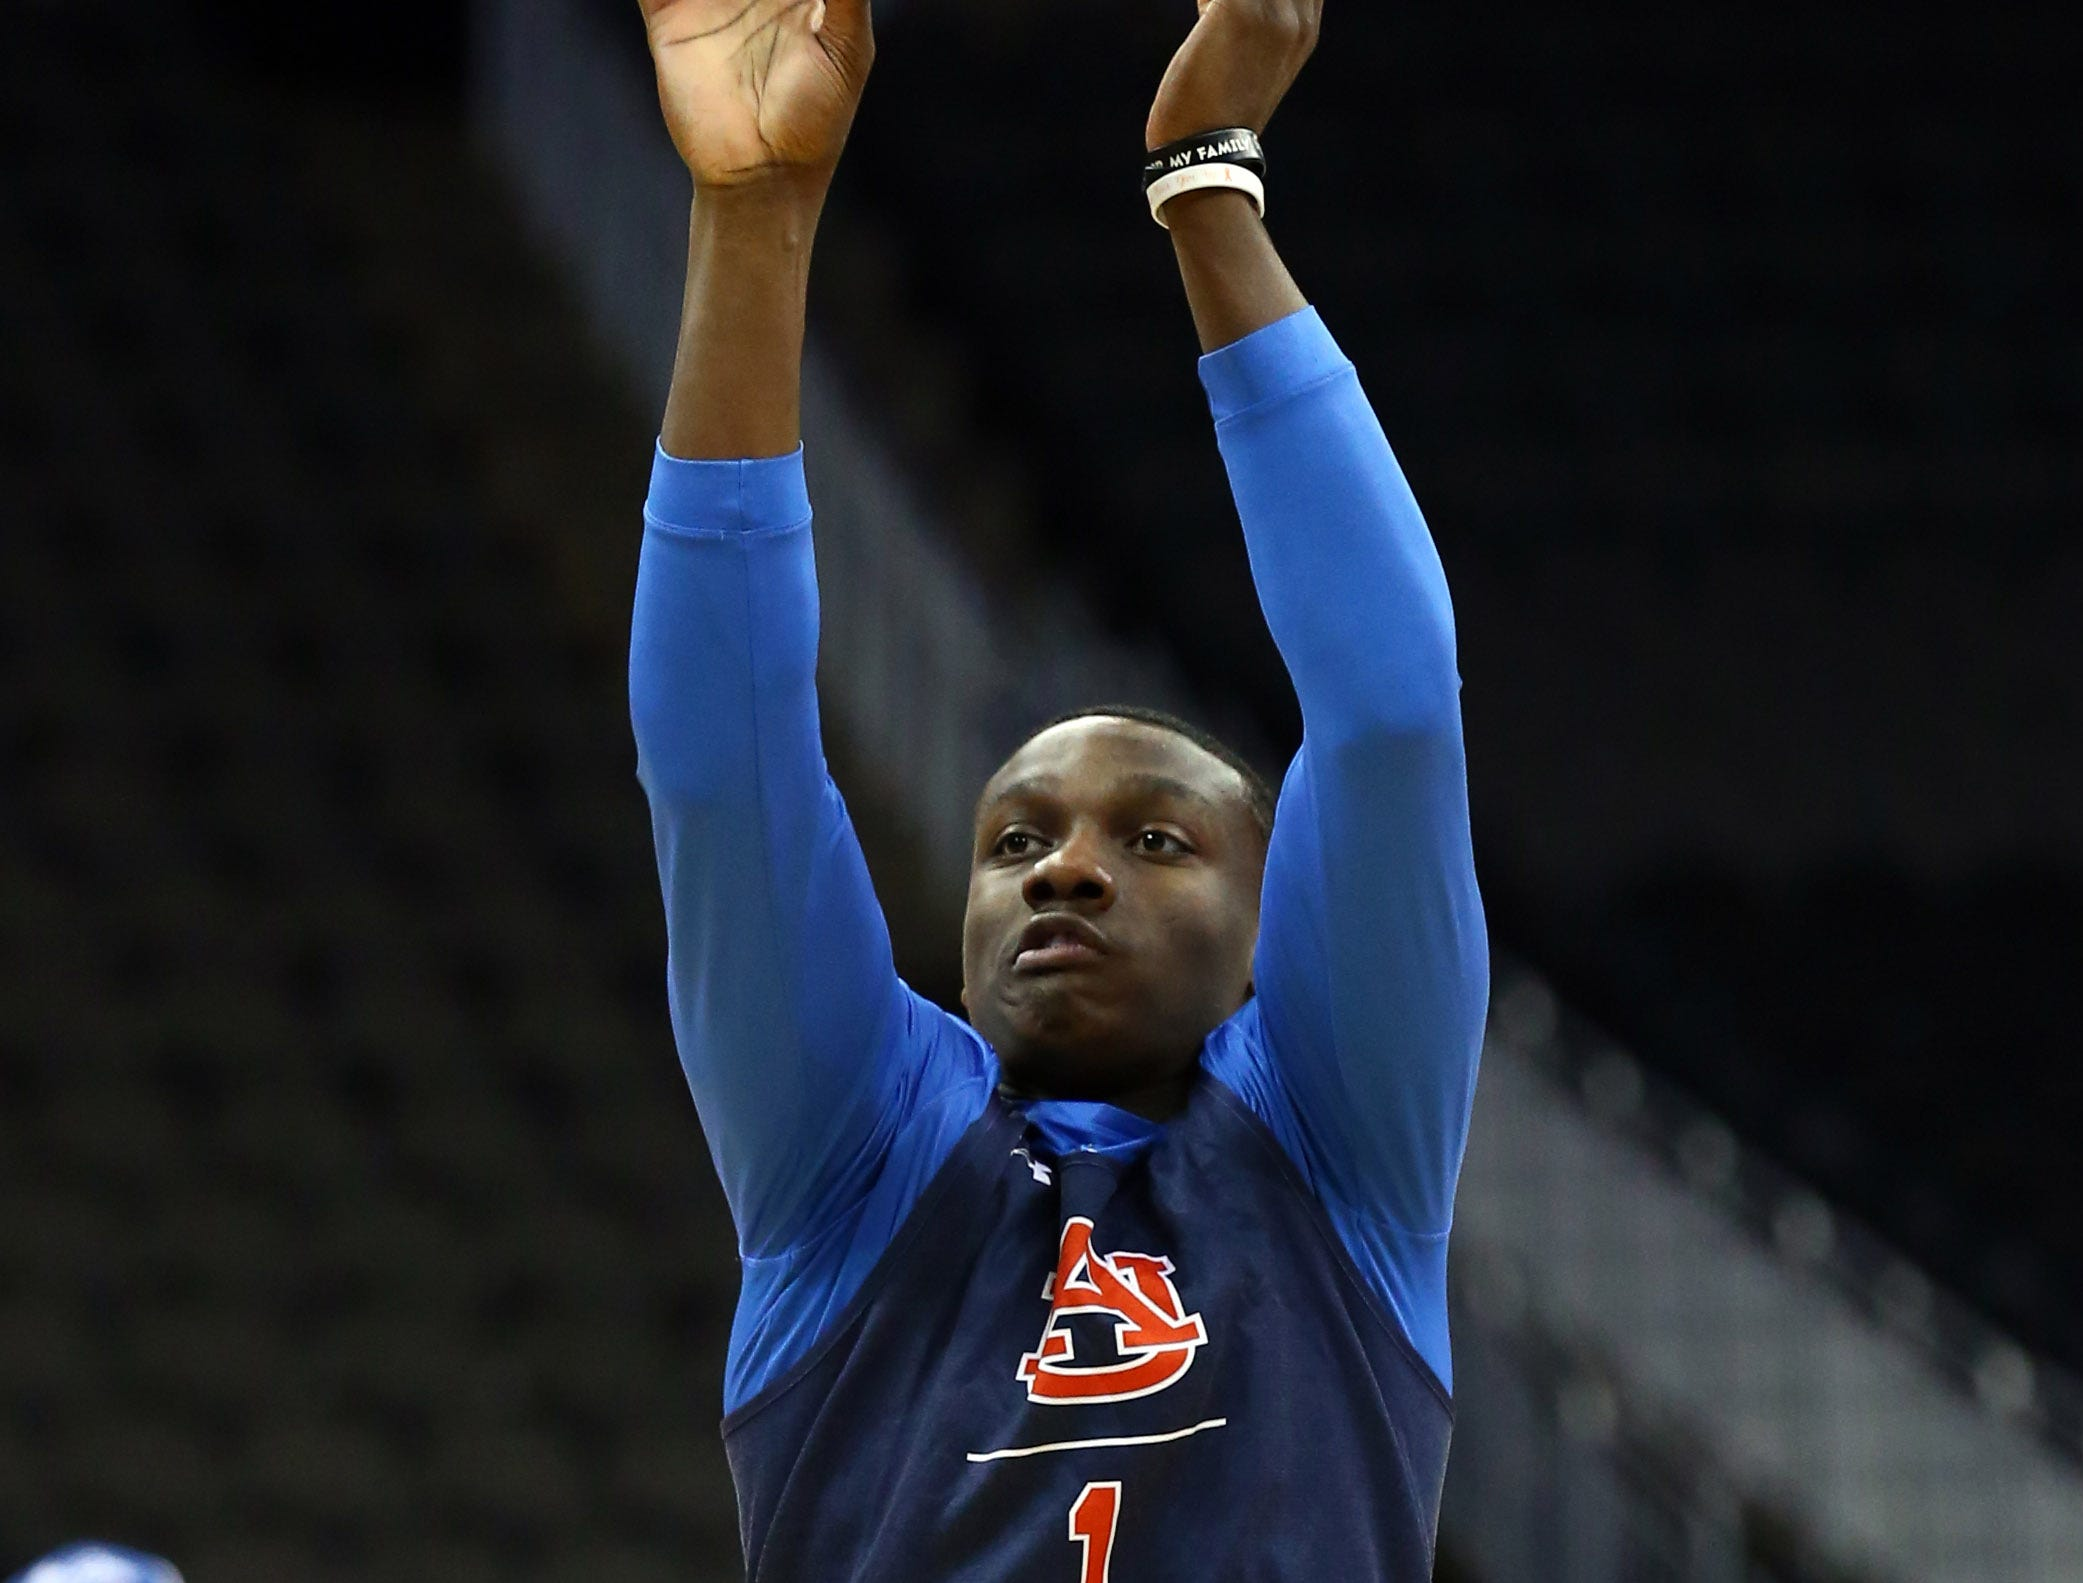 Mar 28, 2019; Kansas City, MO, United States;  Auburn Tigers guard Jared Harper (1) during practice for the midwest regional of the 2019 NCAA Tournament at Sprint Center. Mandatory Credit: Jay Biggerstaff-USA TODAY Sports